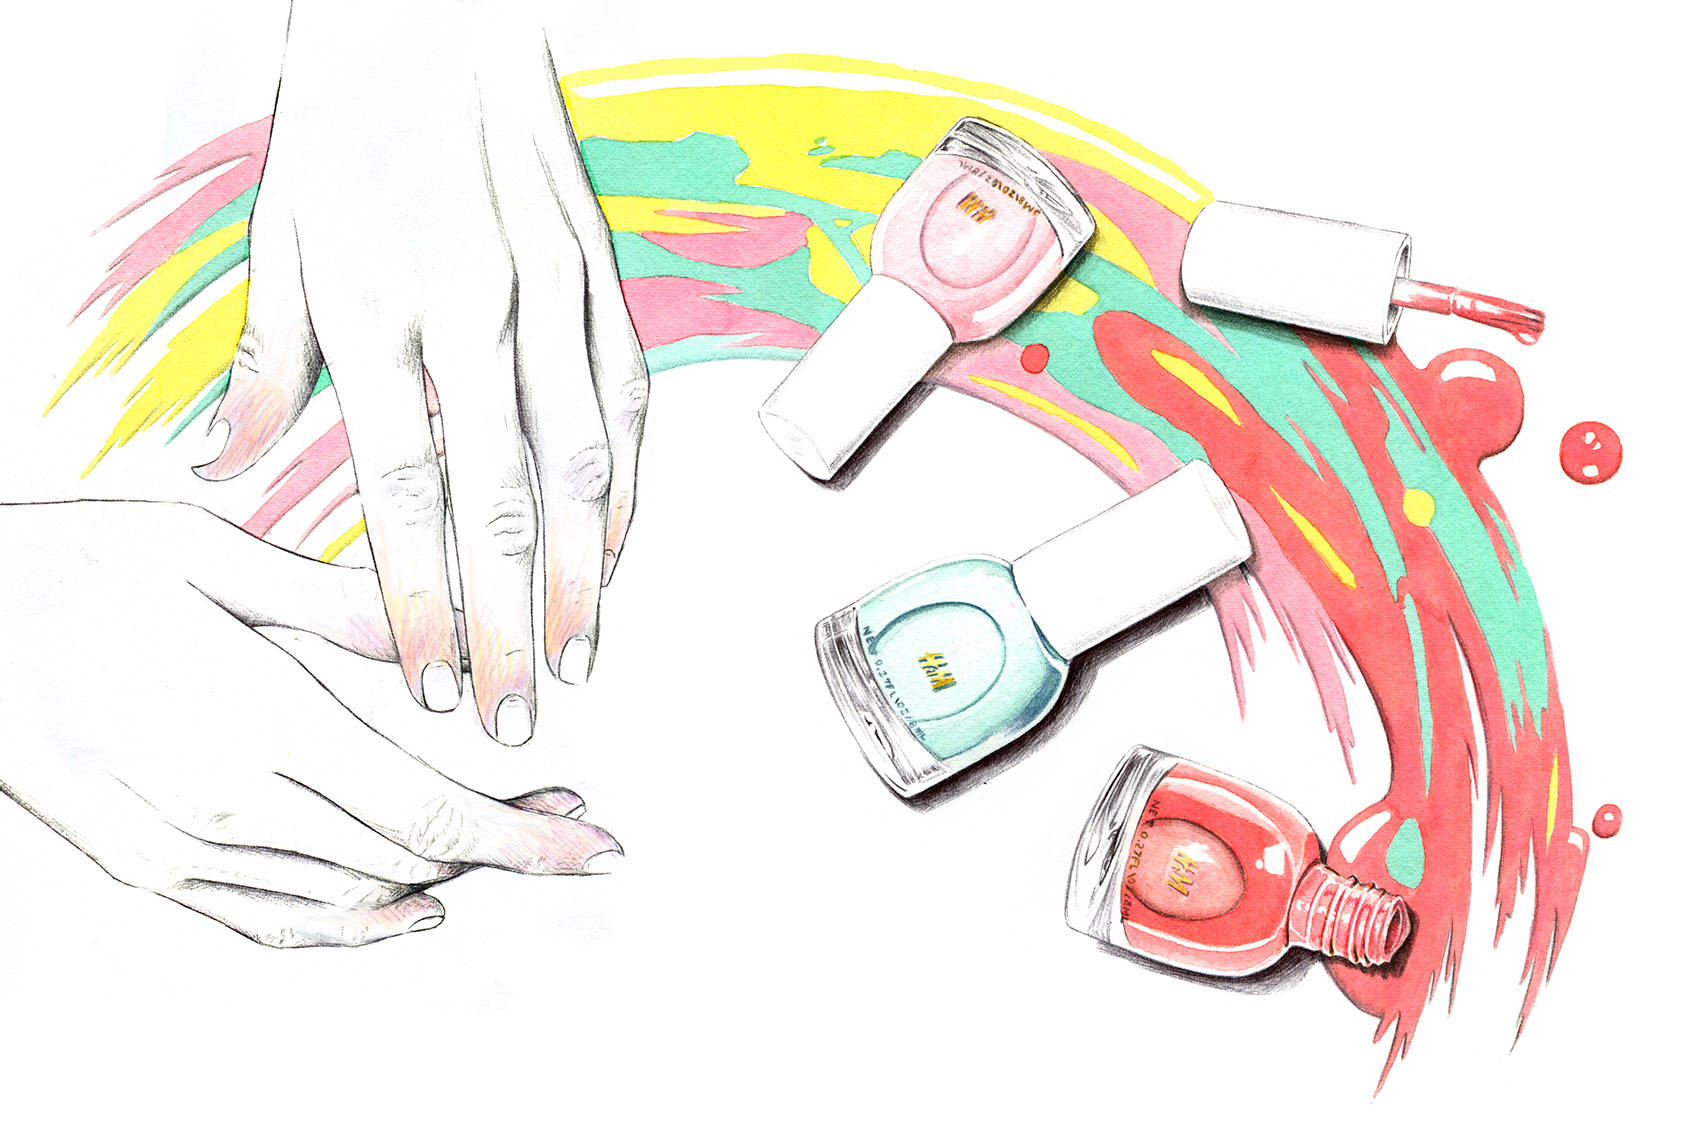 THE ULTIMATE GUIDE TO HEALTHY, STRONG NAILS